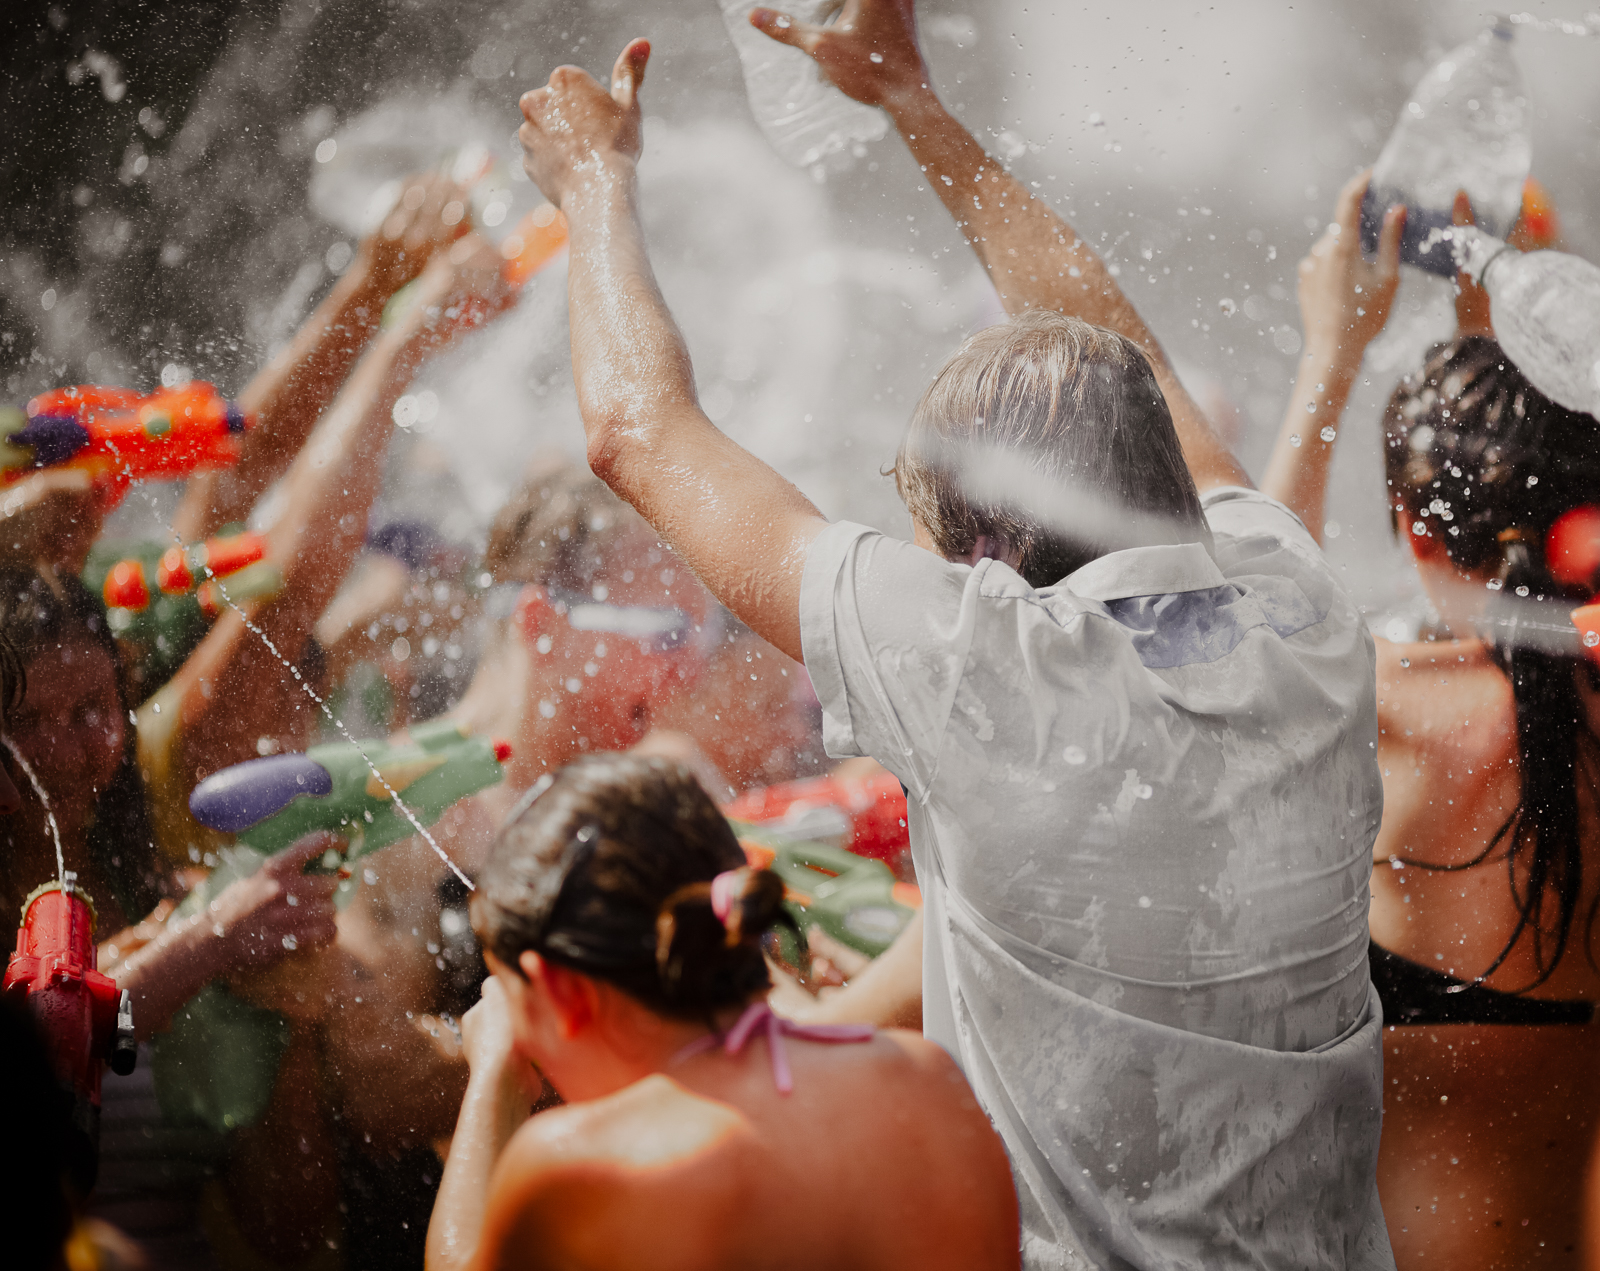 In the peak of summer, this water-themed event, complete with a parade, water slides, water fights and more, brings people to town from all over.